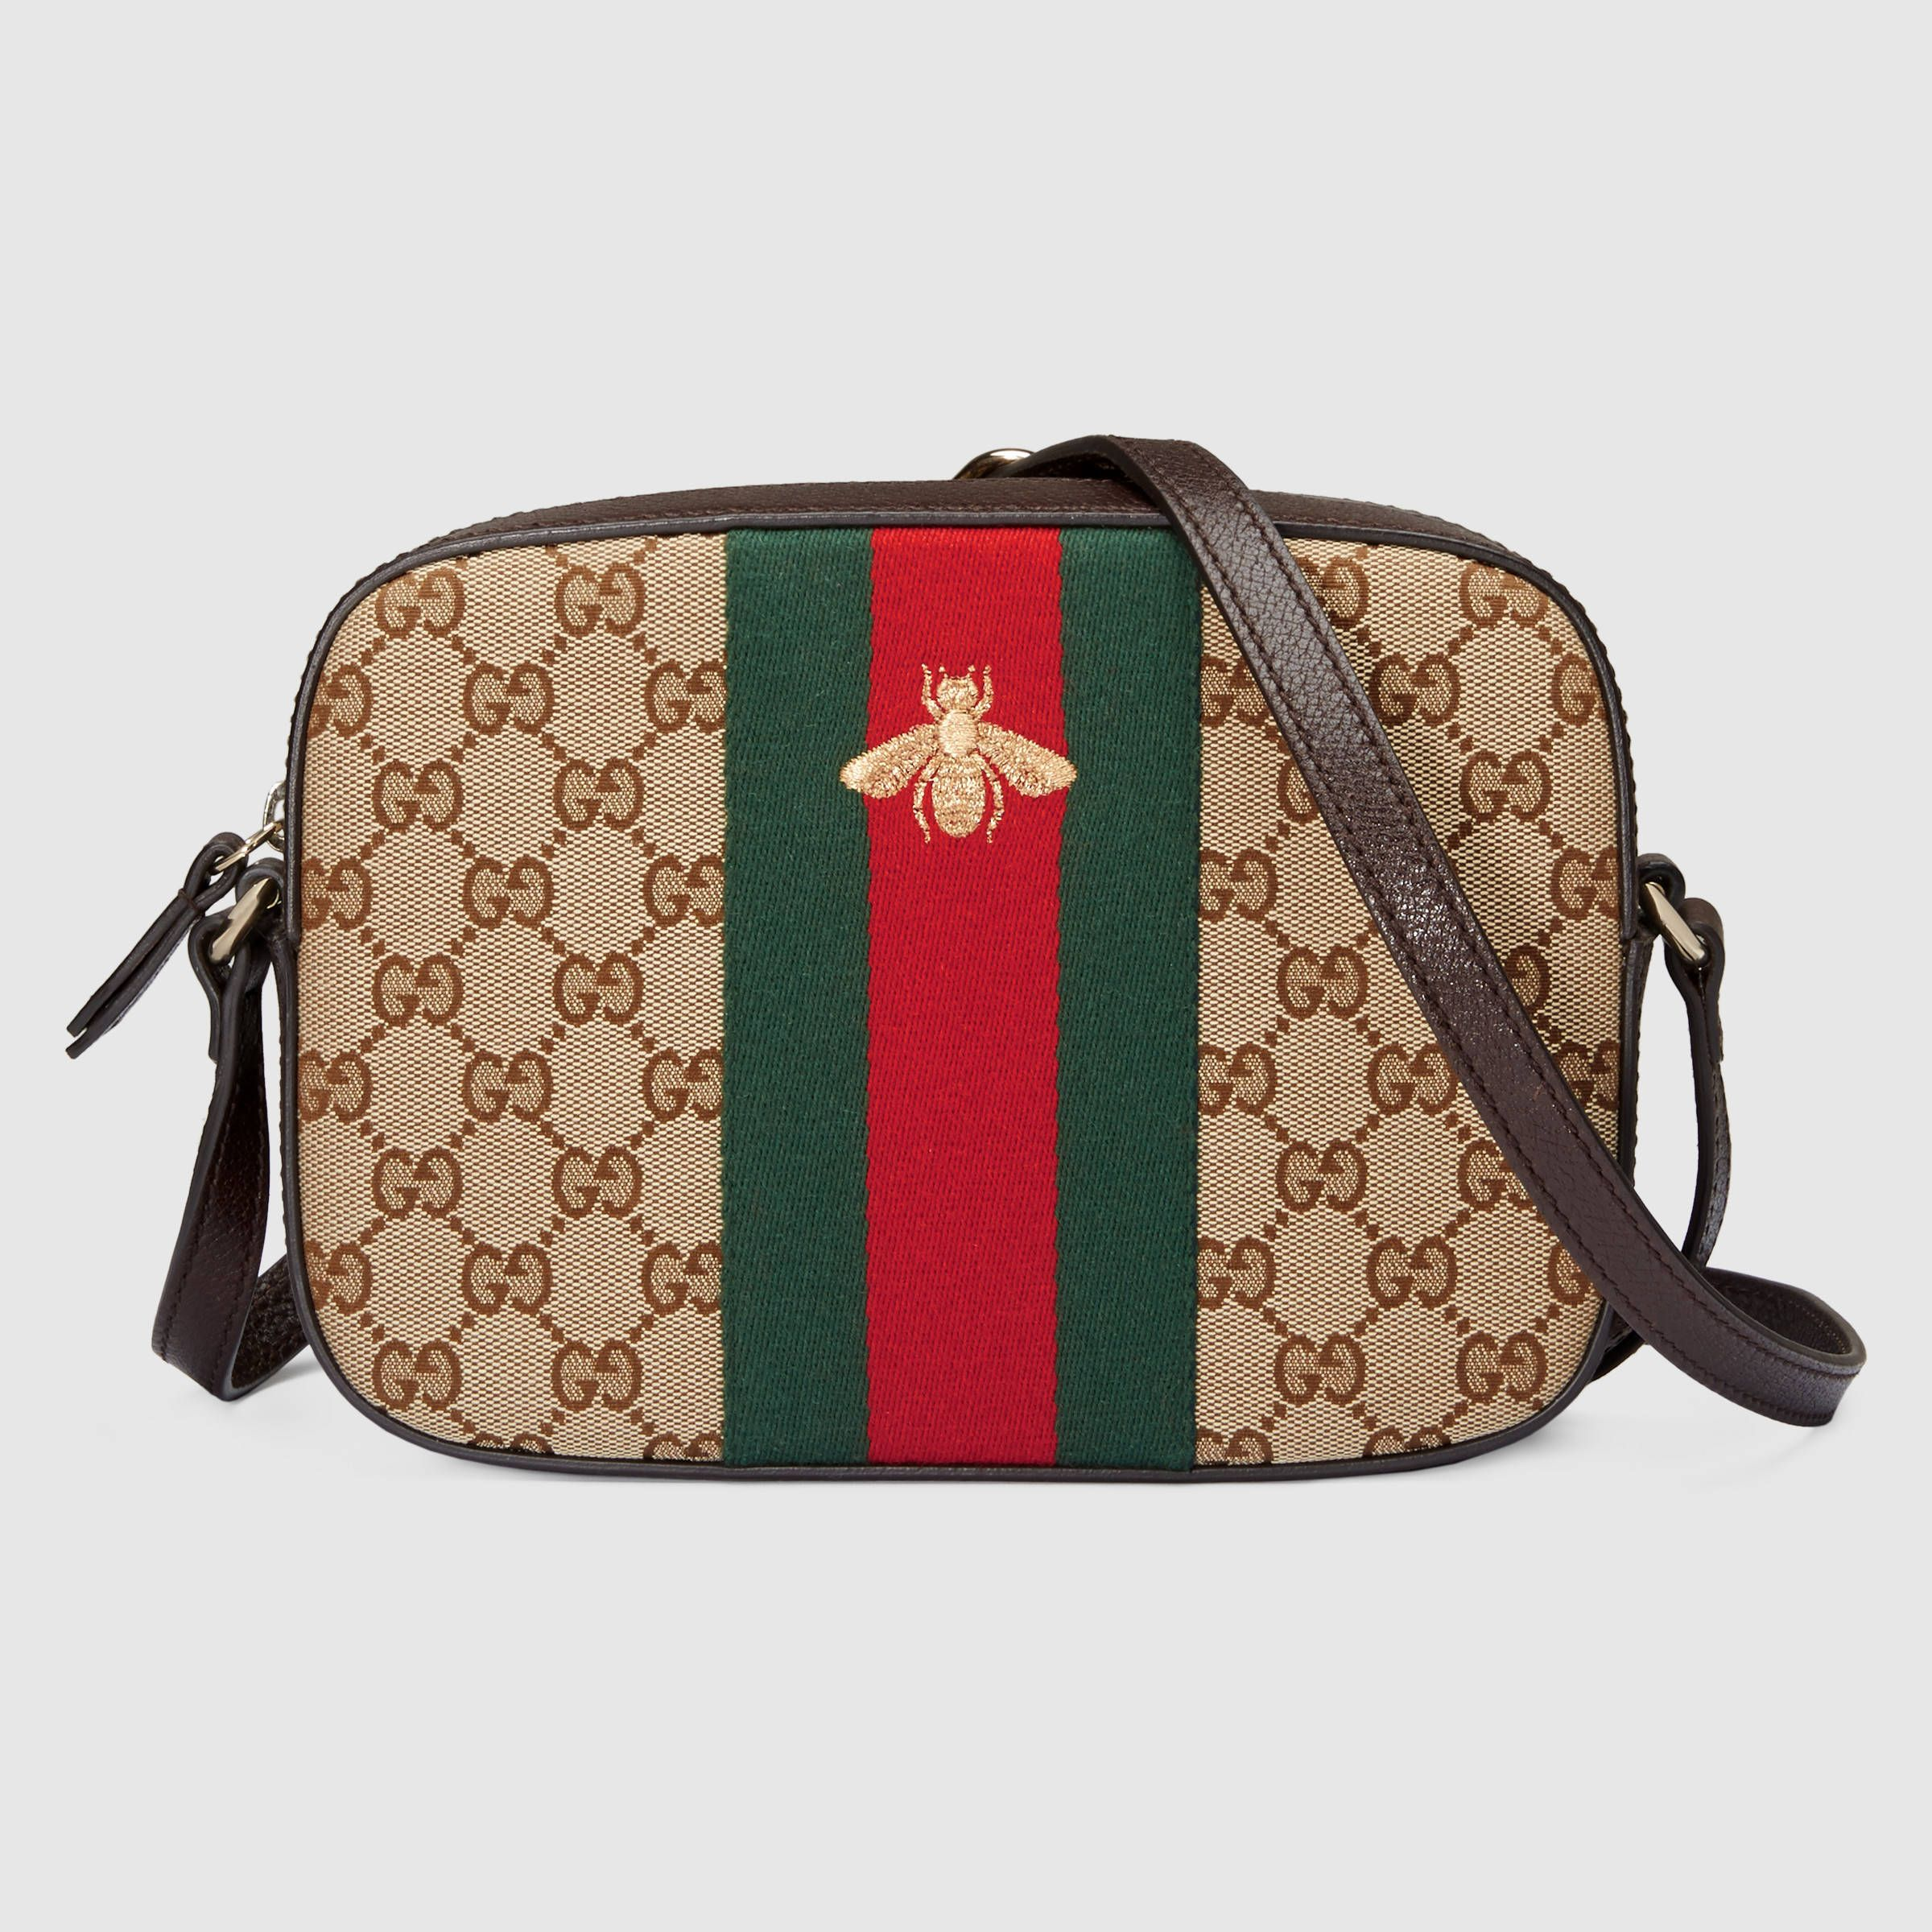 Gucci Women - Original GG shoulder bag - 412008KQWYG8869   I should ... 2730a69fe49